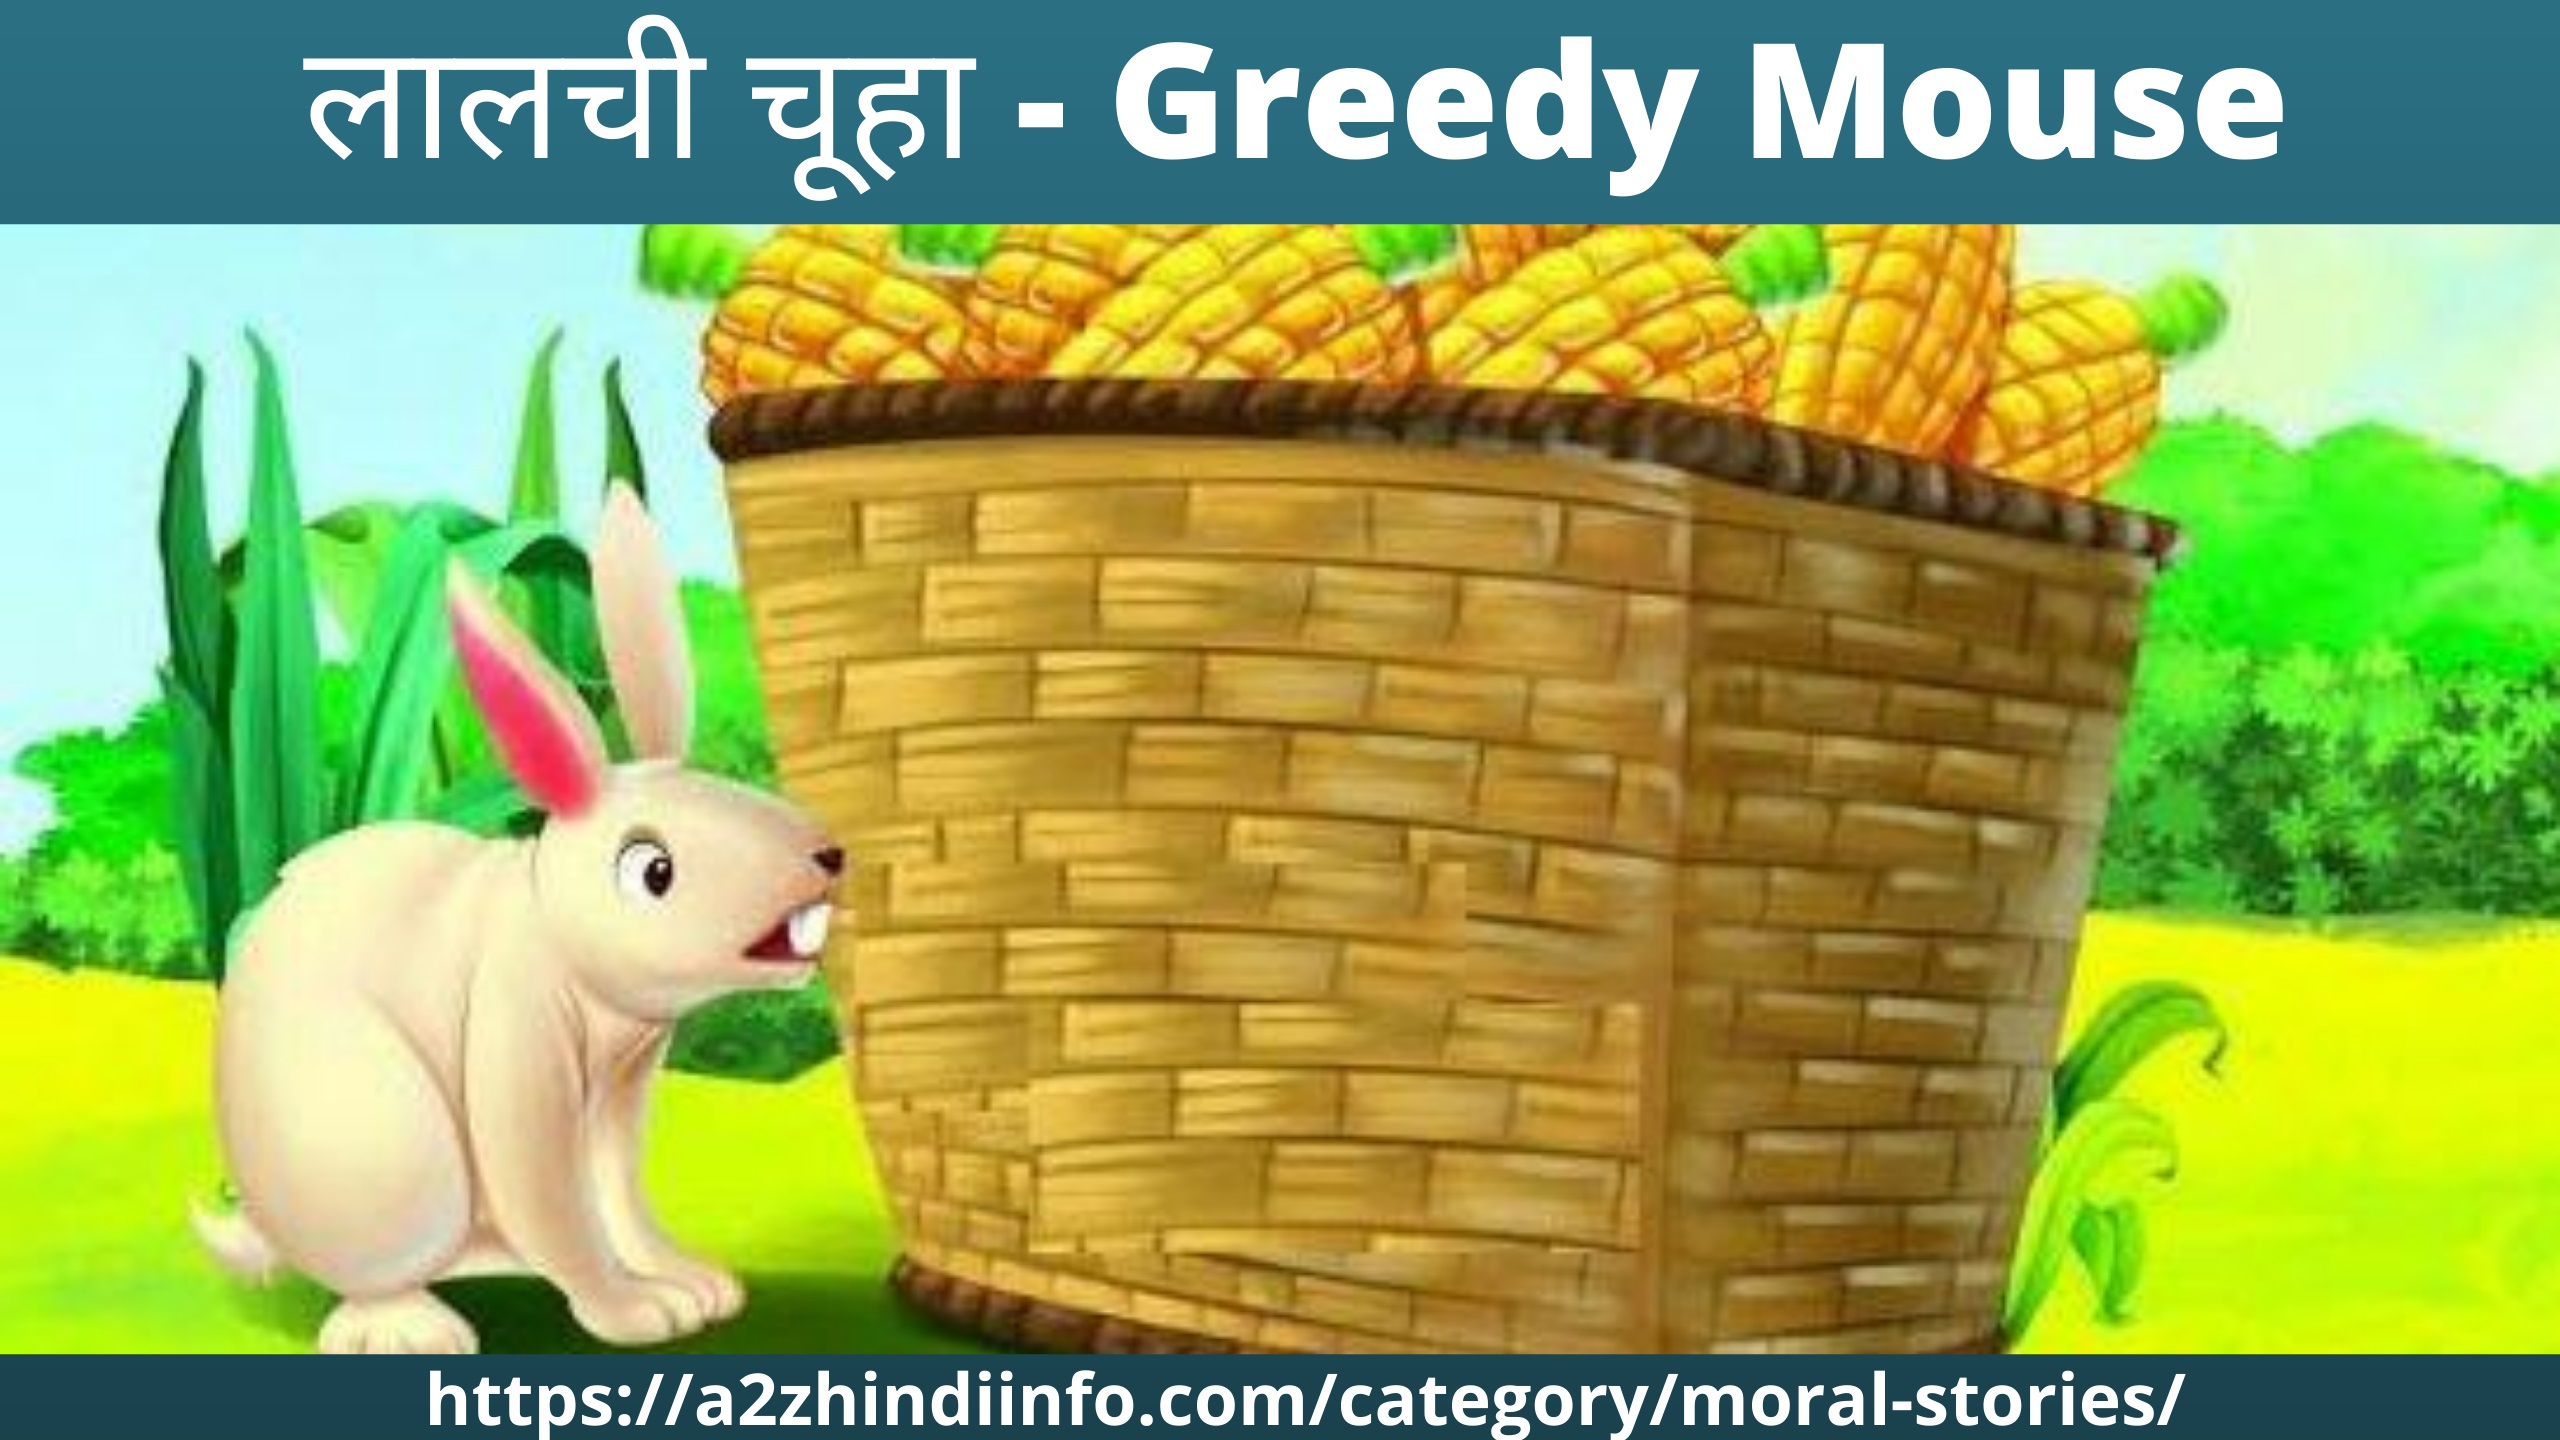 greedy mouse - lalchi chooha